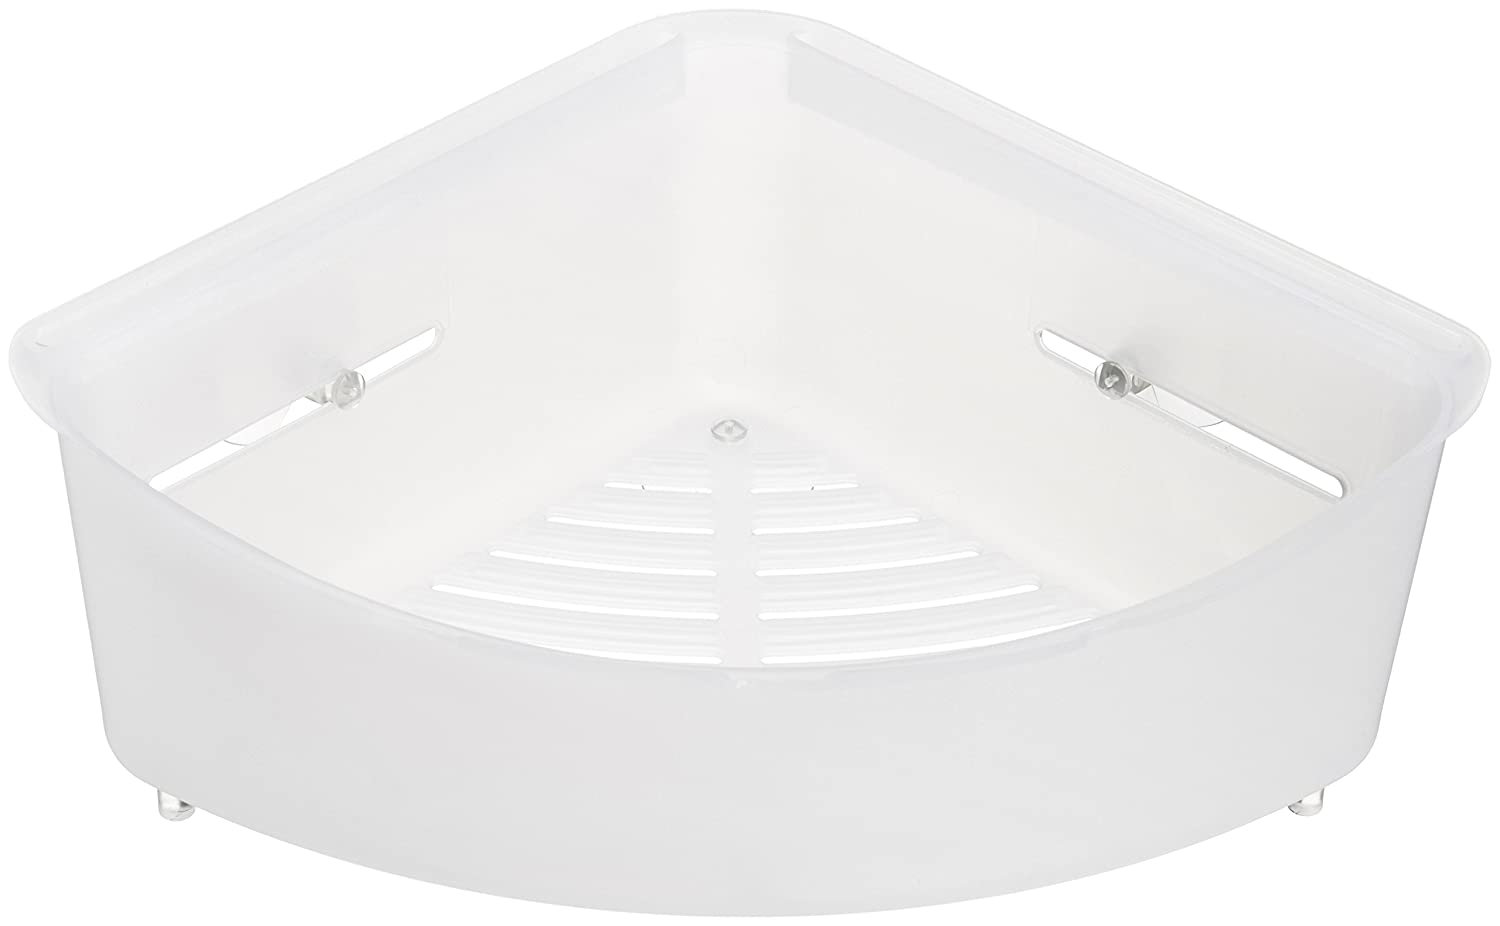 AmazonBasics Corner Shower Basket with Suction Mount - White 023290-660-A60